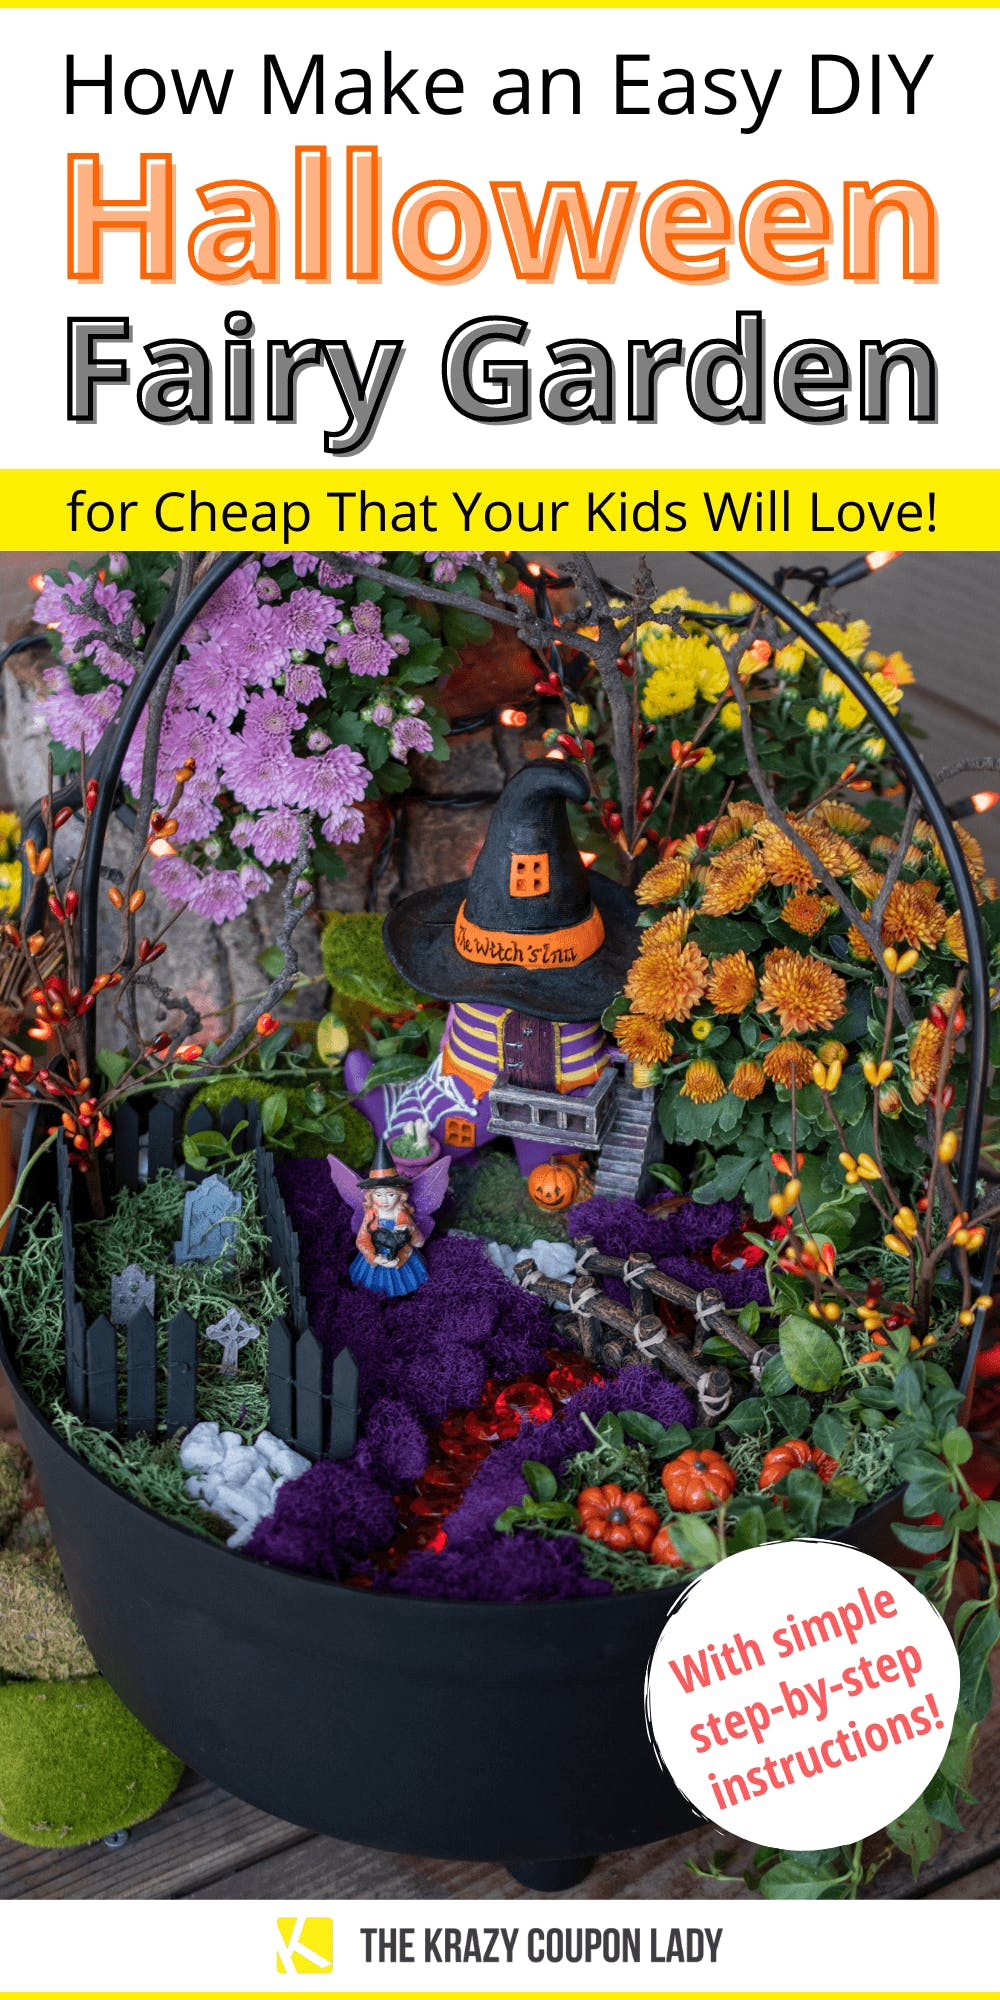 Make An Easy Halloween Fairy Garden Your Kids Will Love The Krazy Coupon Lady